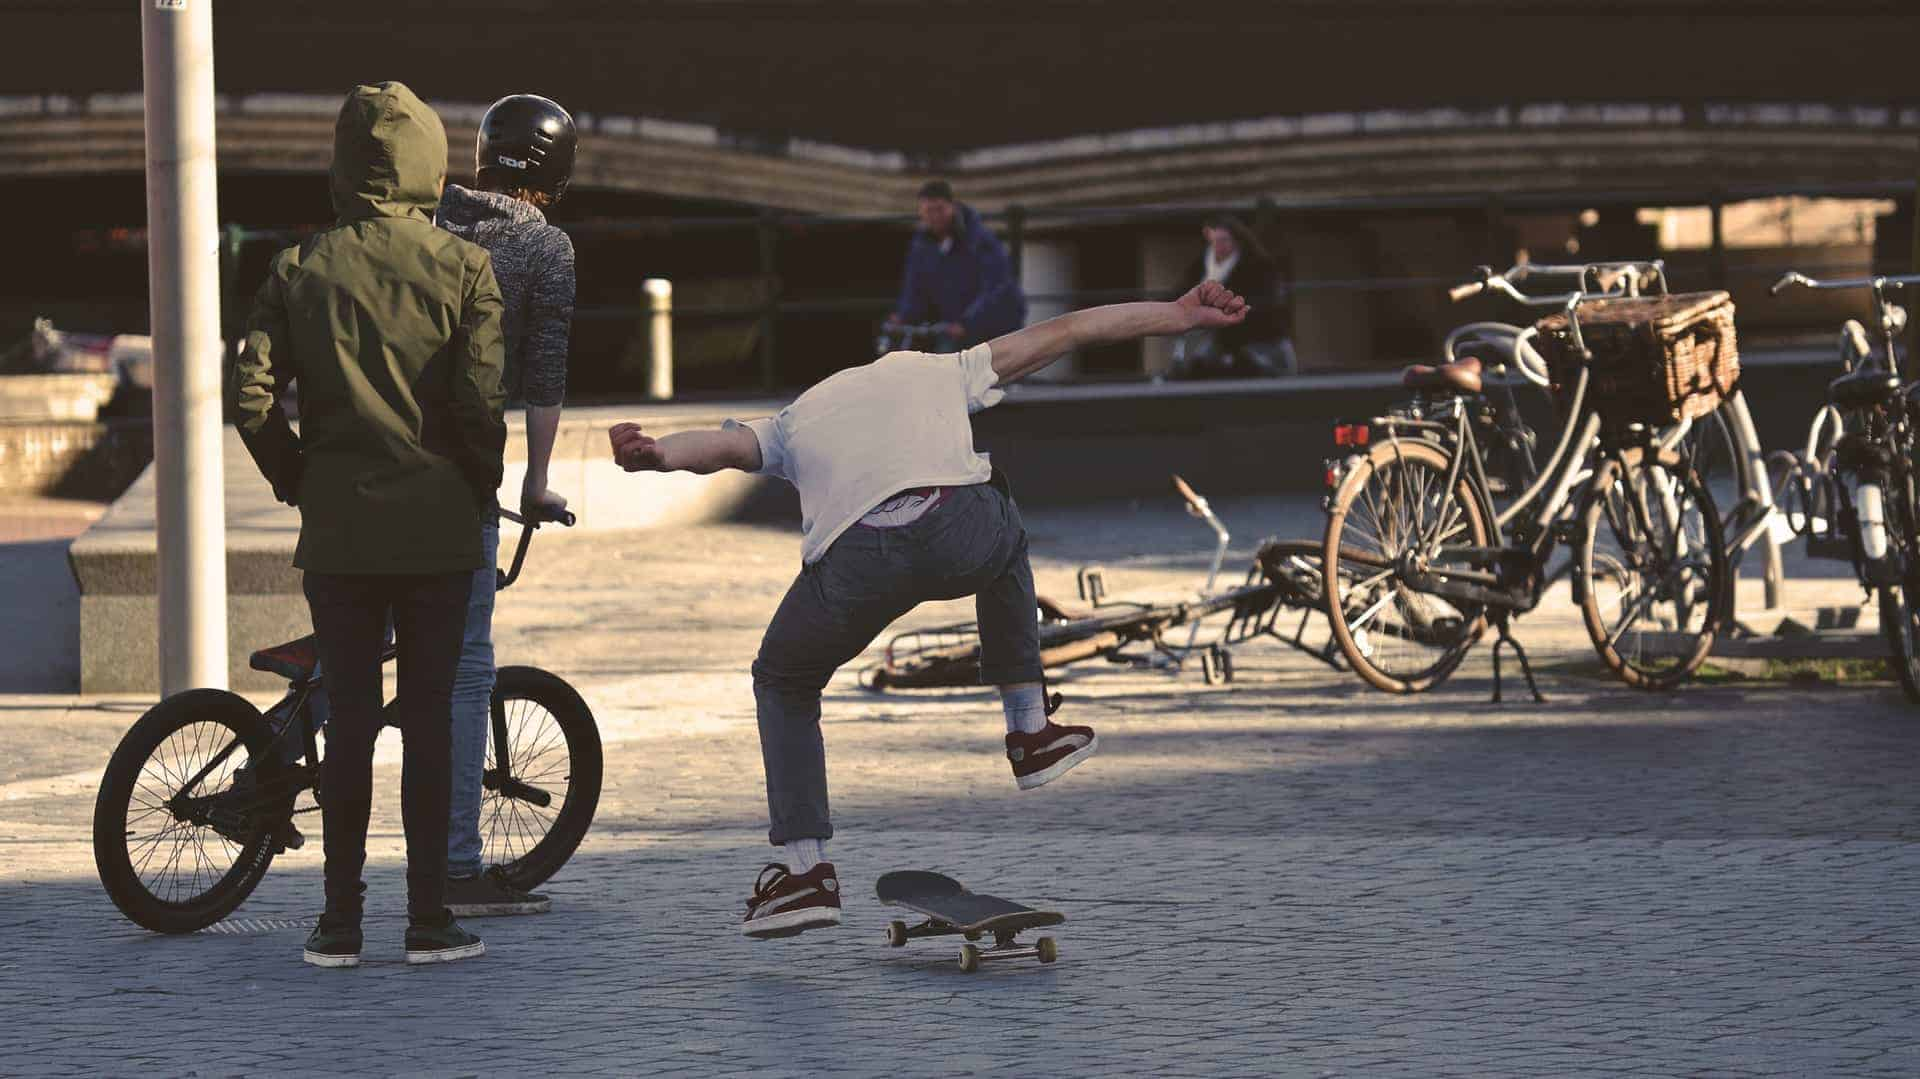 Skateboarding Safety Tips and Guide 2